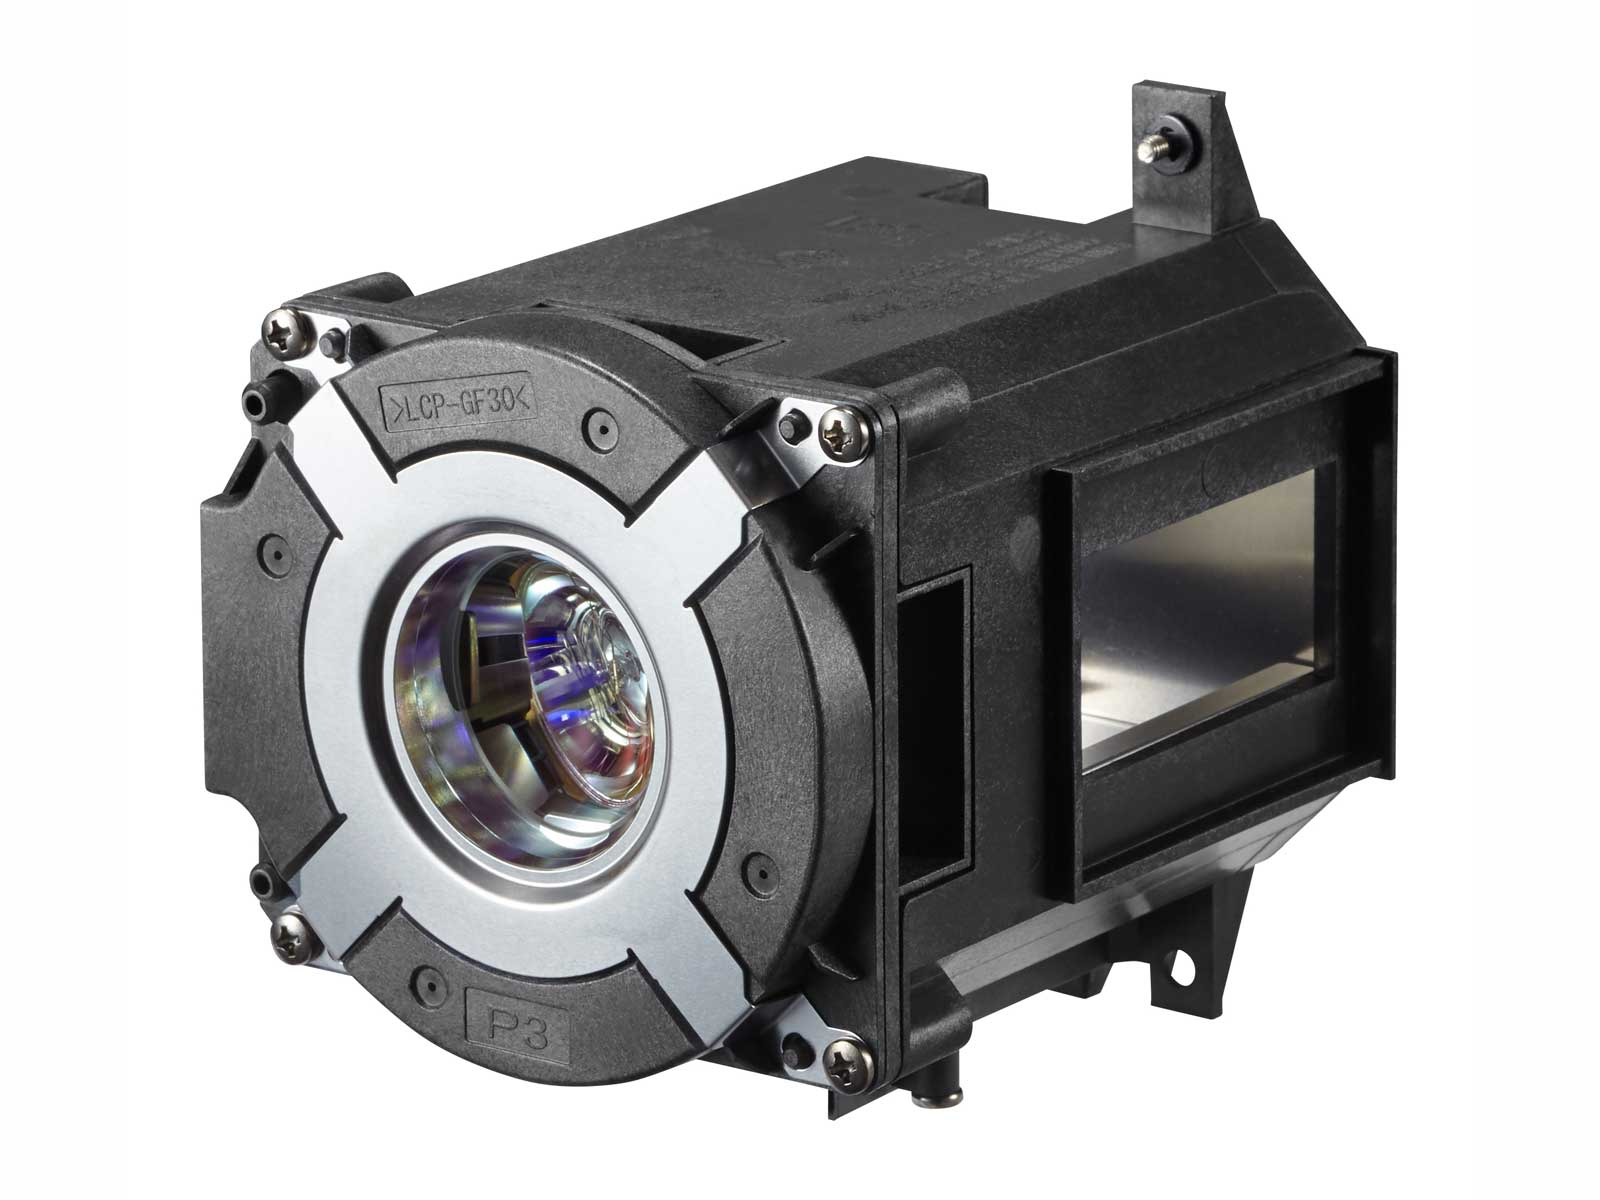 Genie Lamp for OPTOMA PRO200X Projector